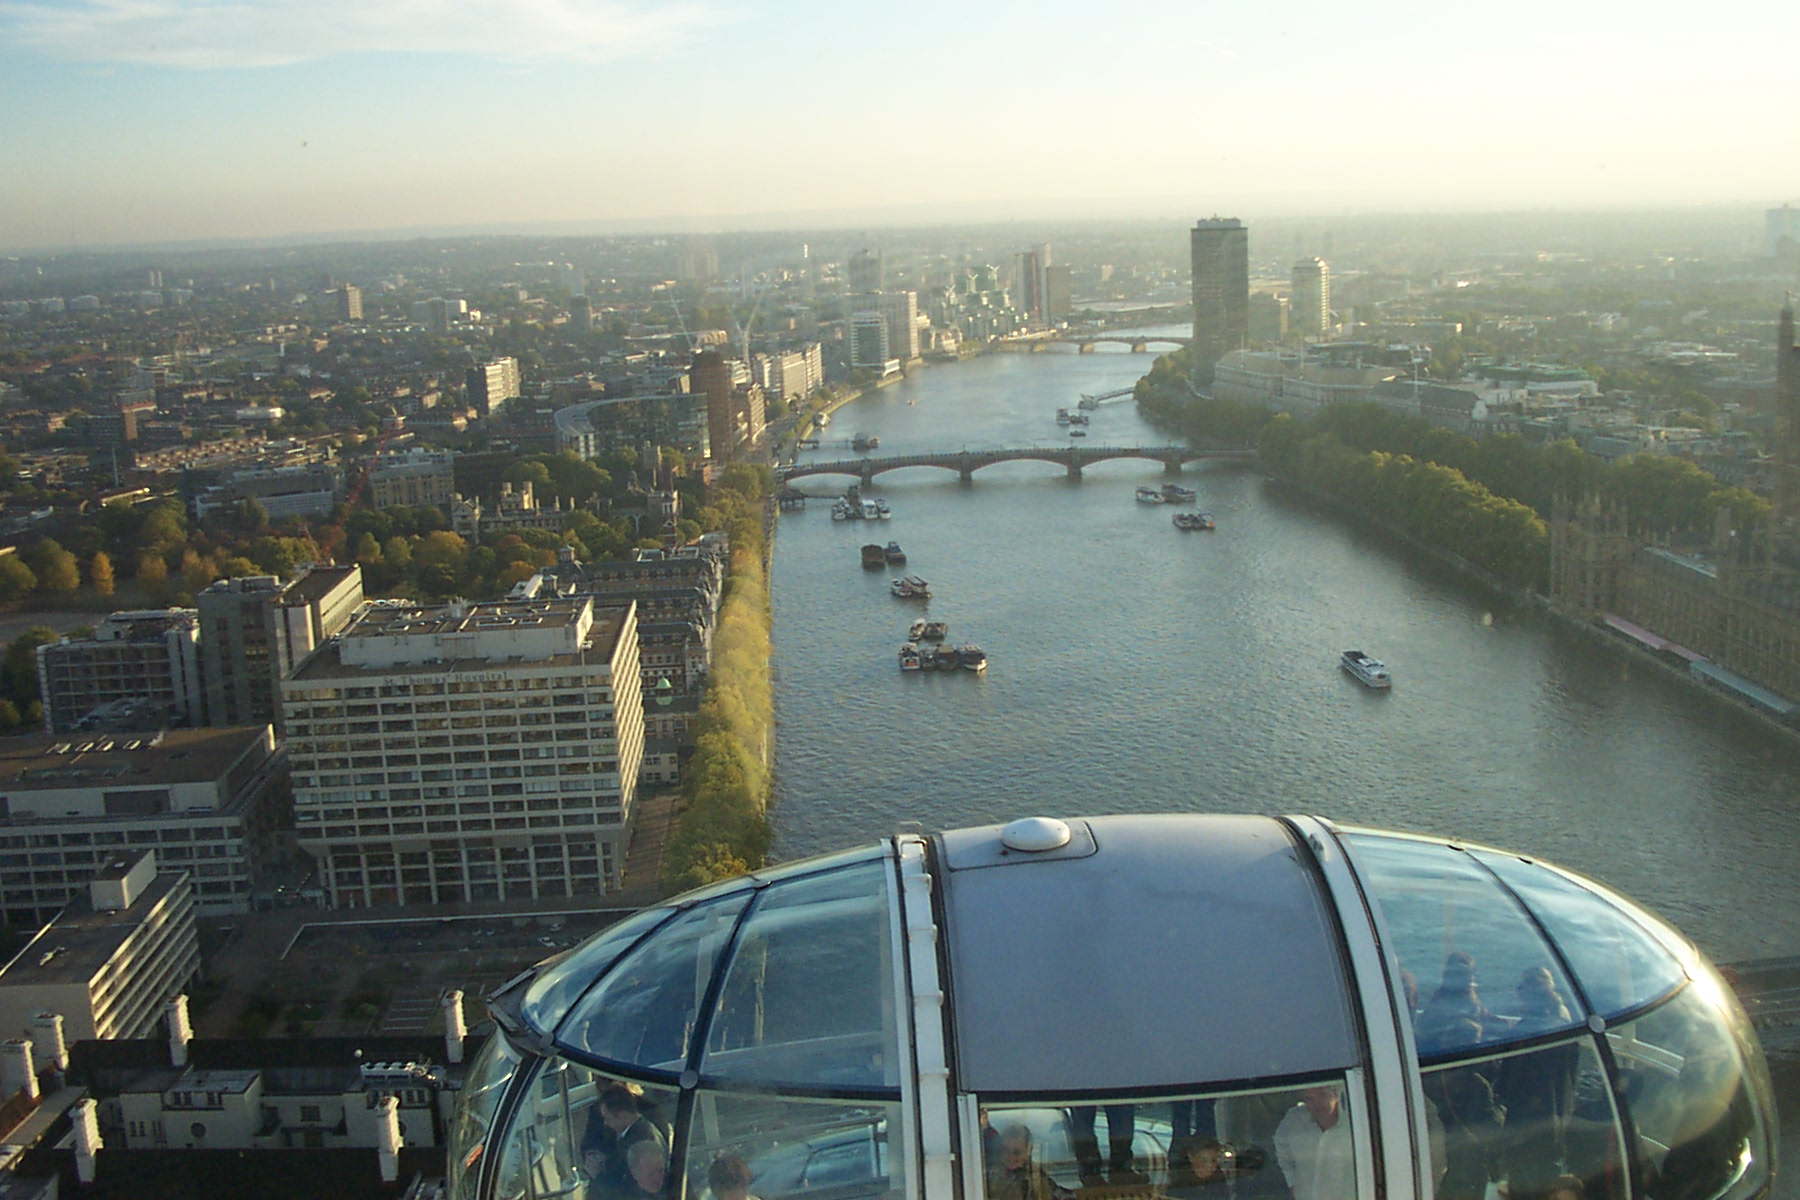 View_from_the_London_Eye_10-2003_01.jpg